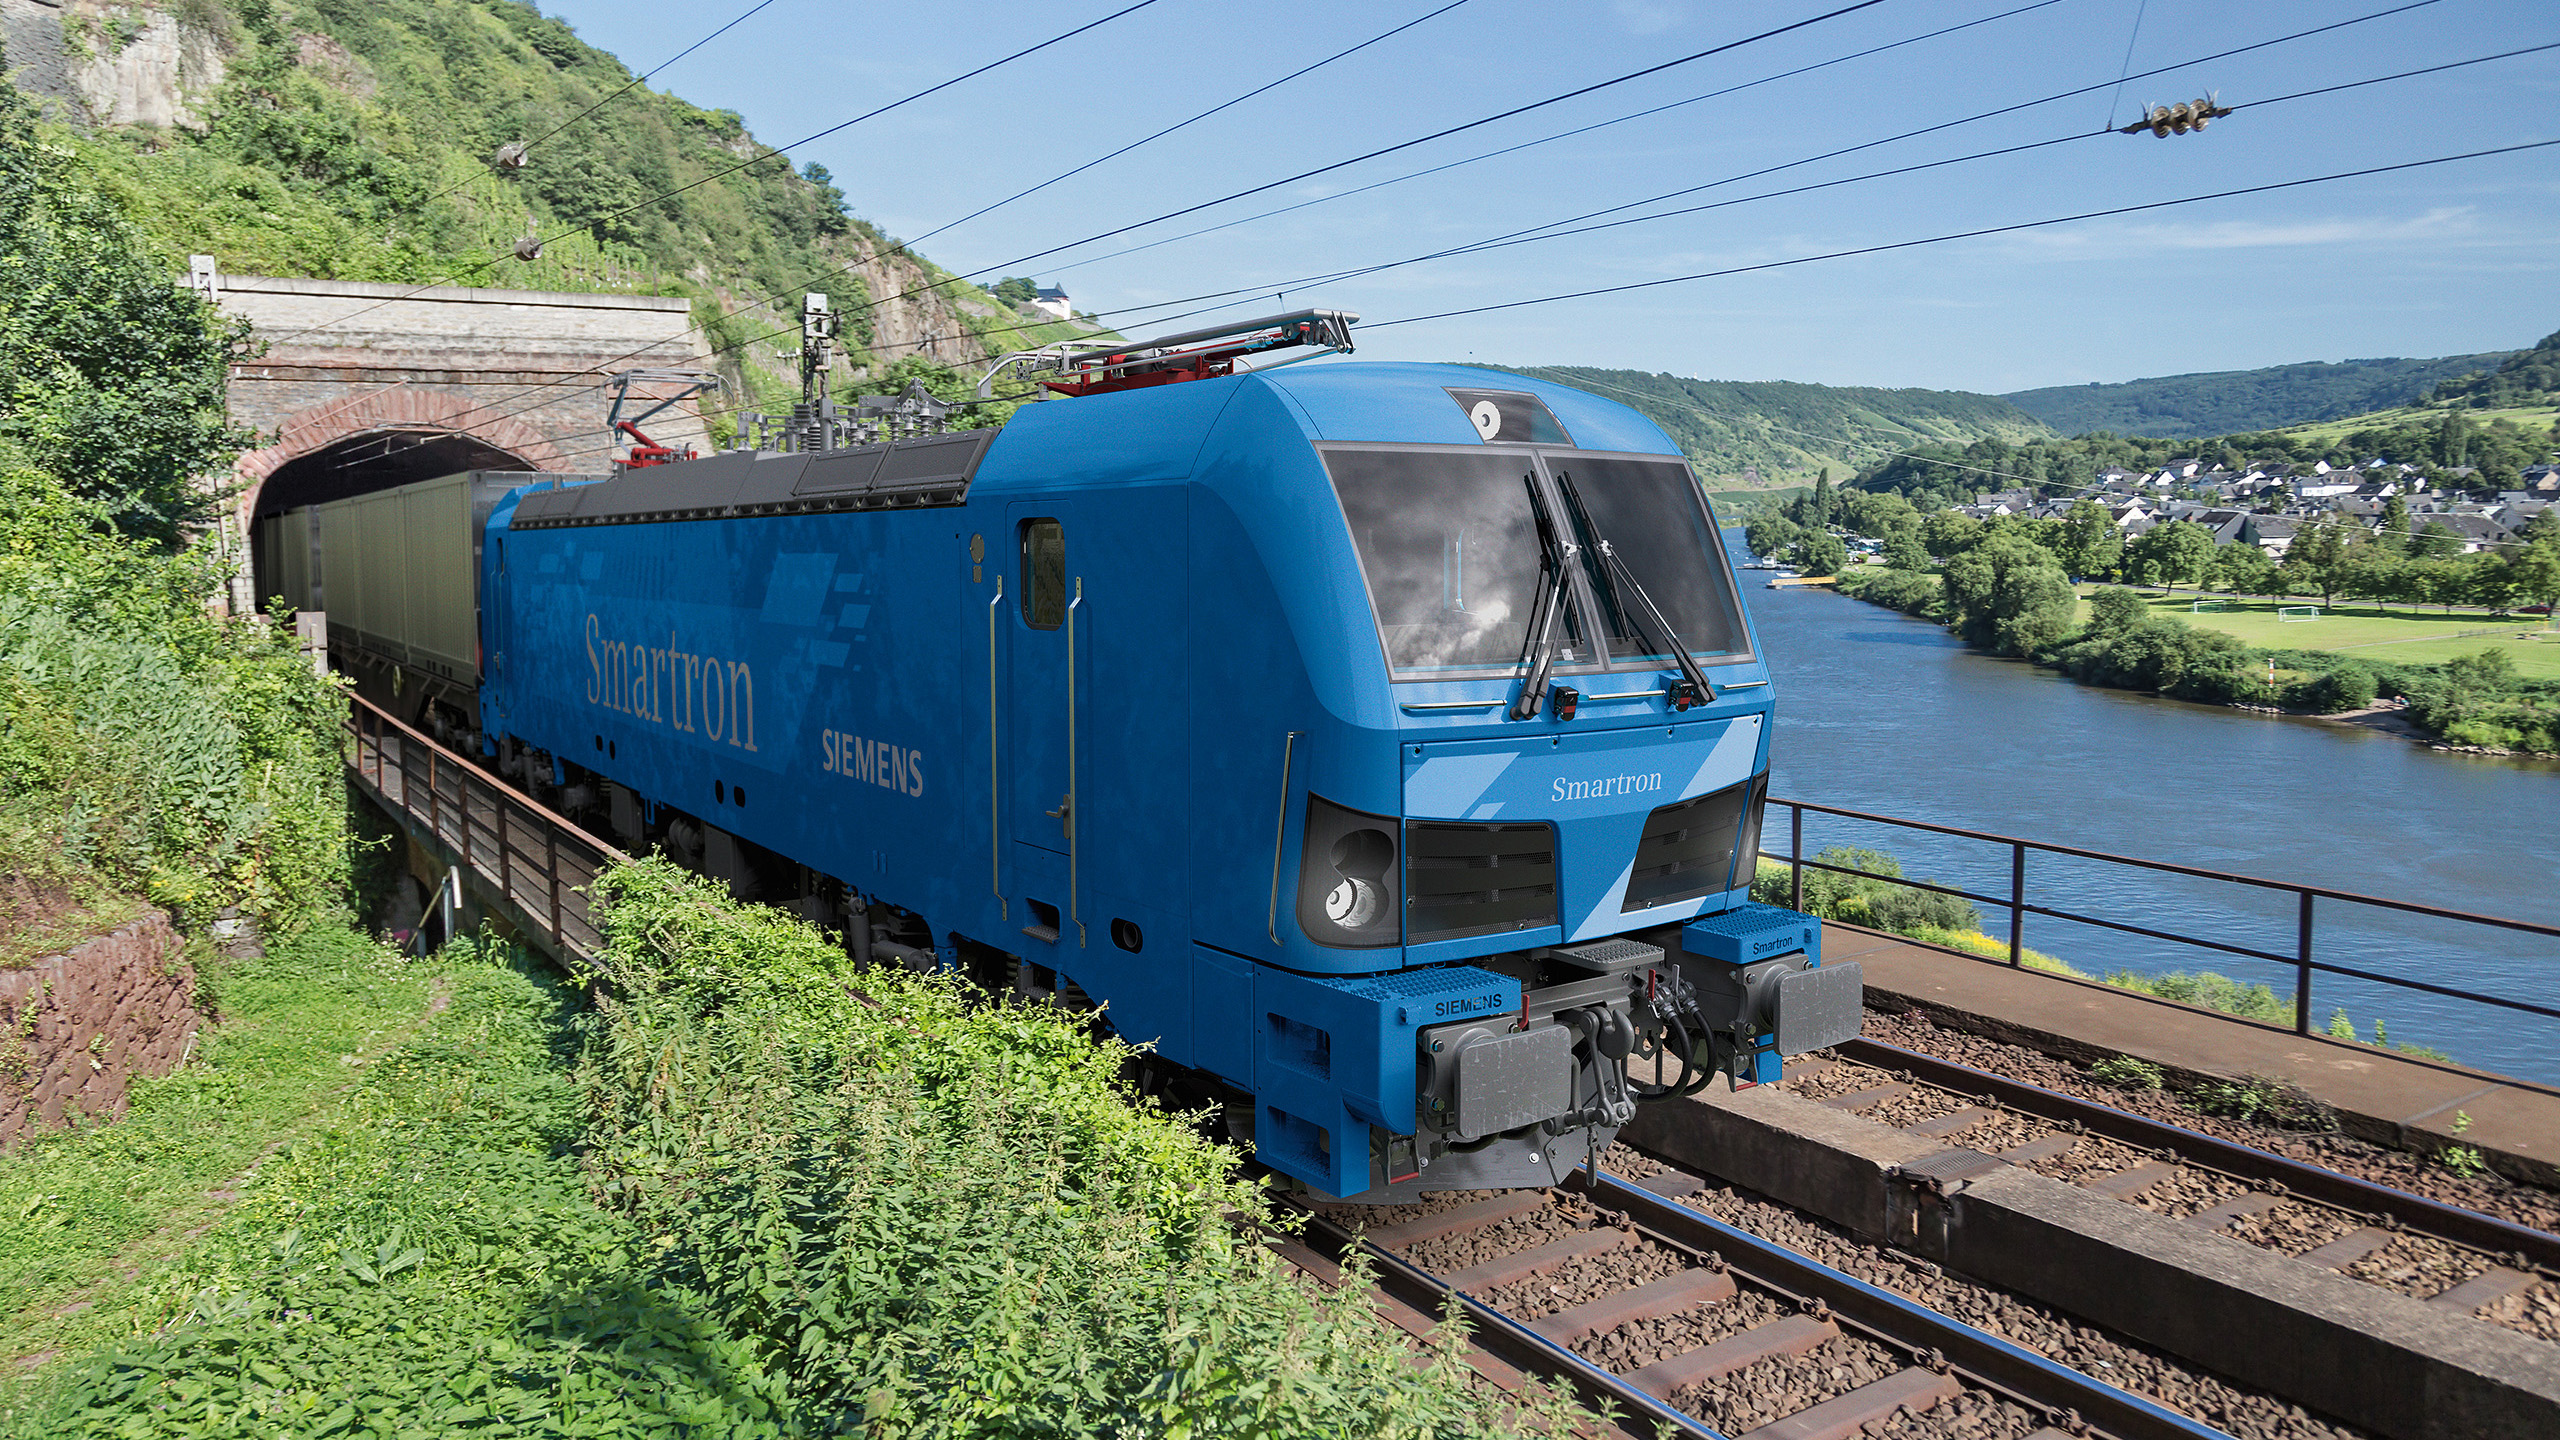 Siemens Smartron 25kV AC locomotive for Bulgaria